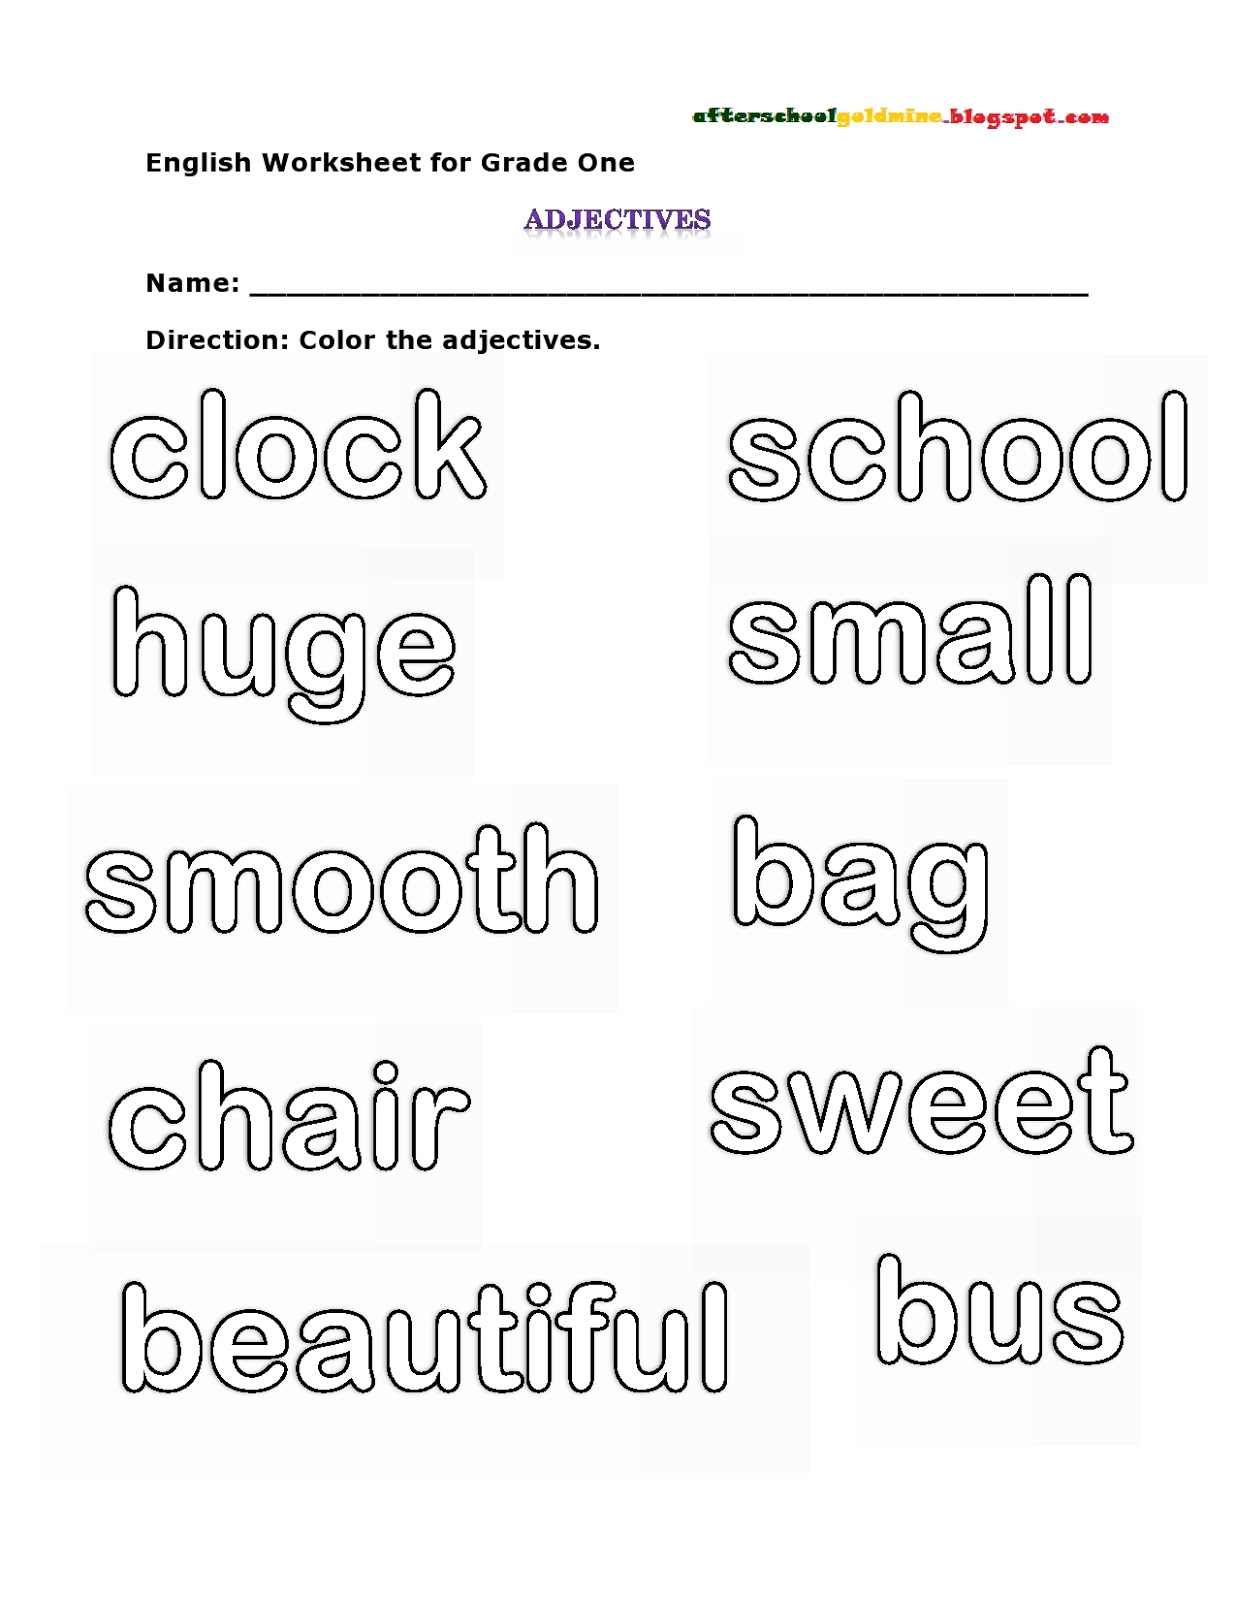 Worksheet Adjective Worksheet For Grade 1 arab unity school grade 1 c blog english adjectives worksheet worksheet